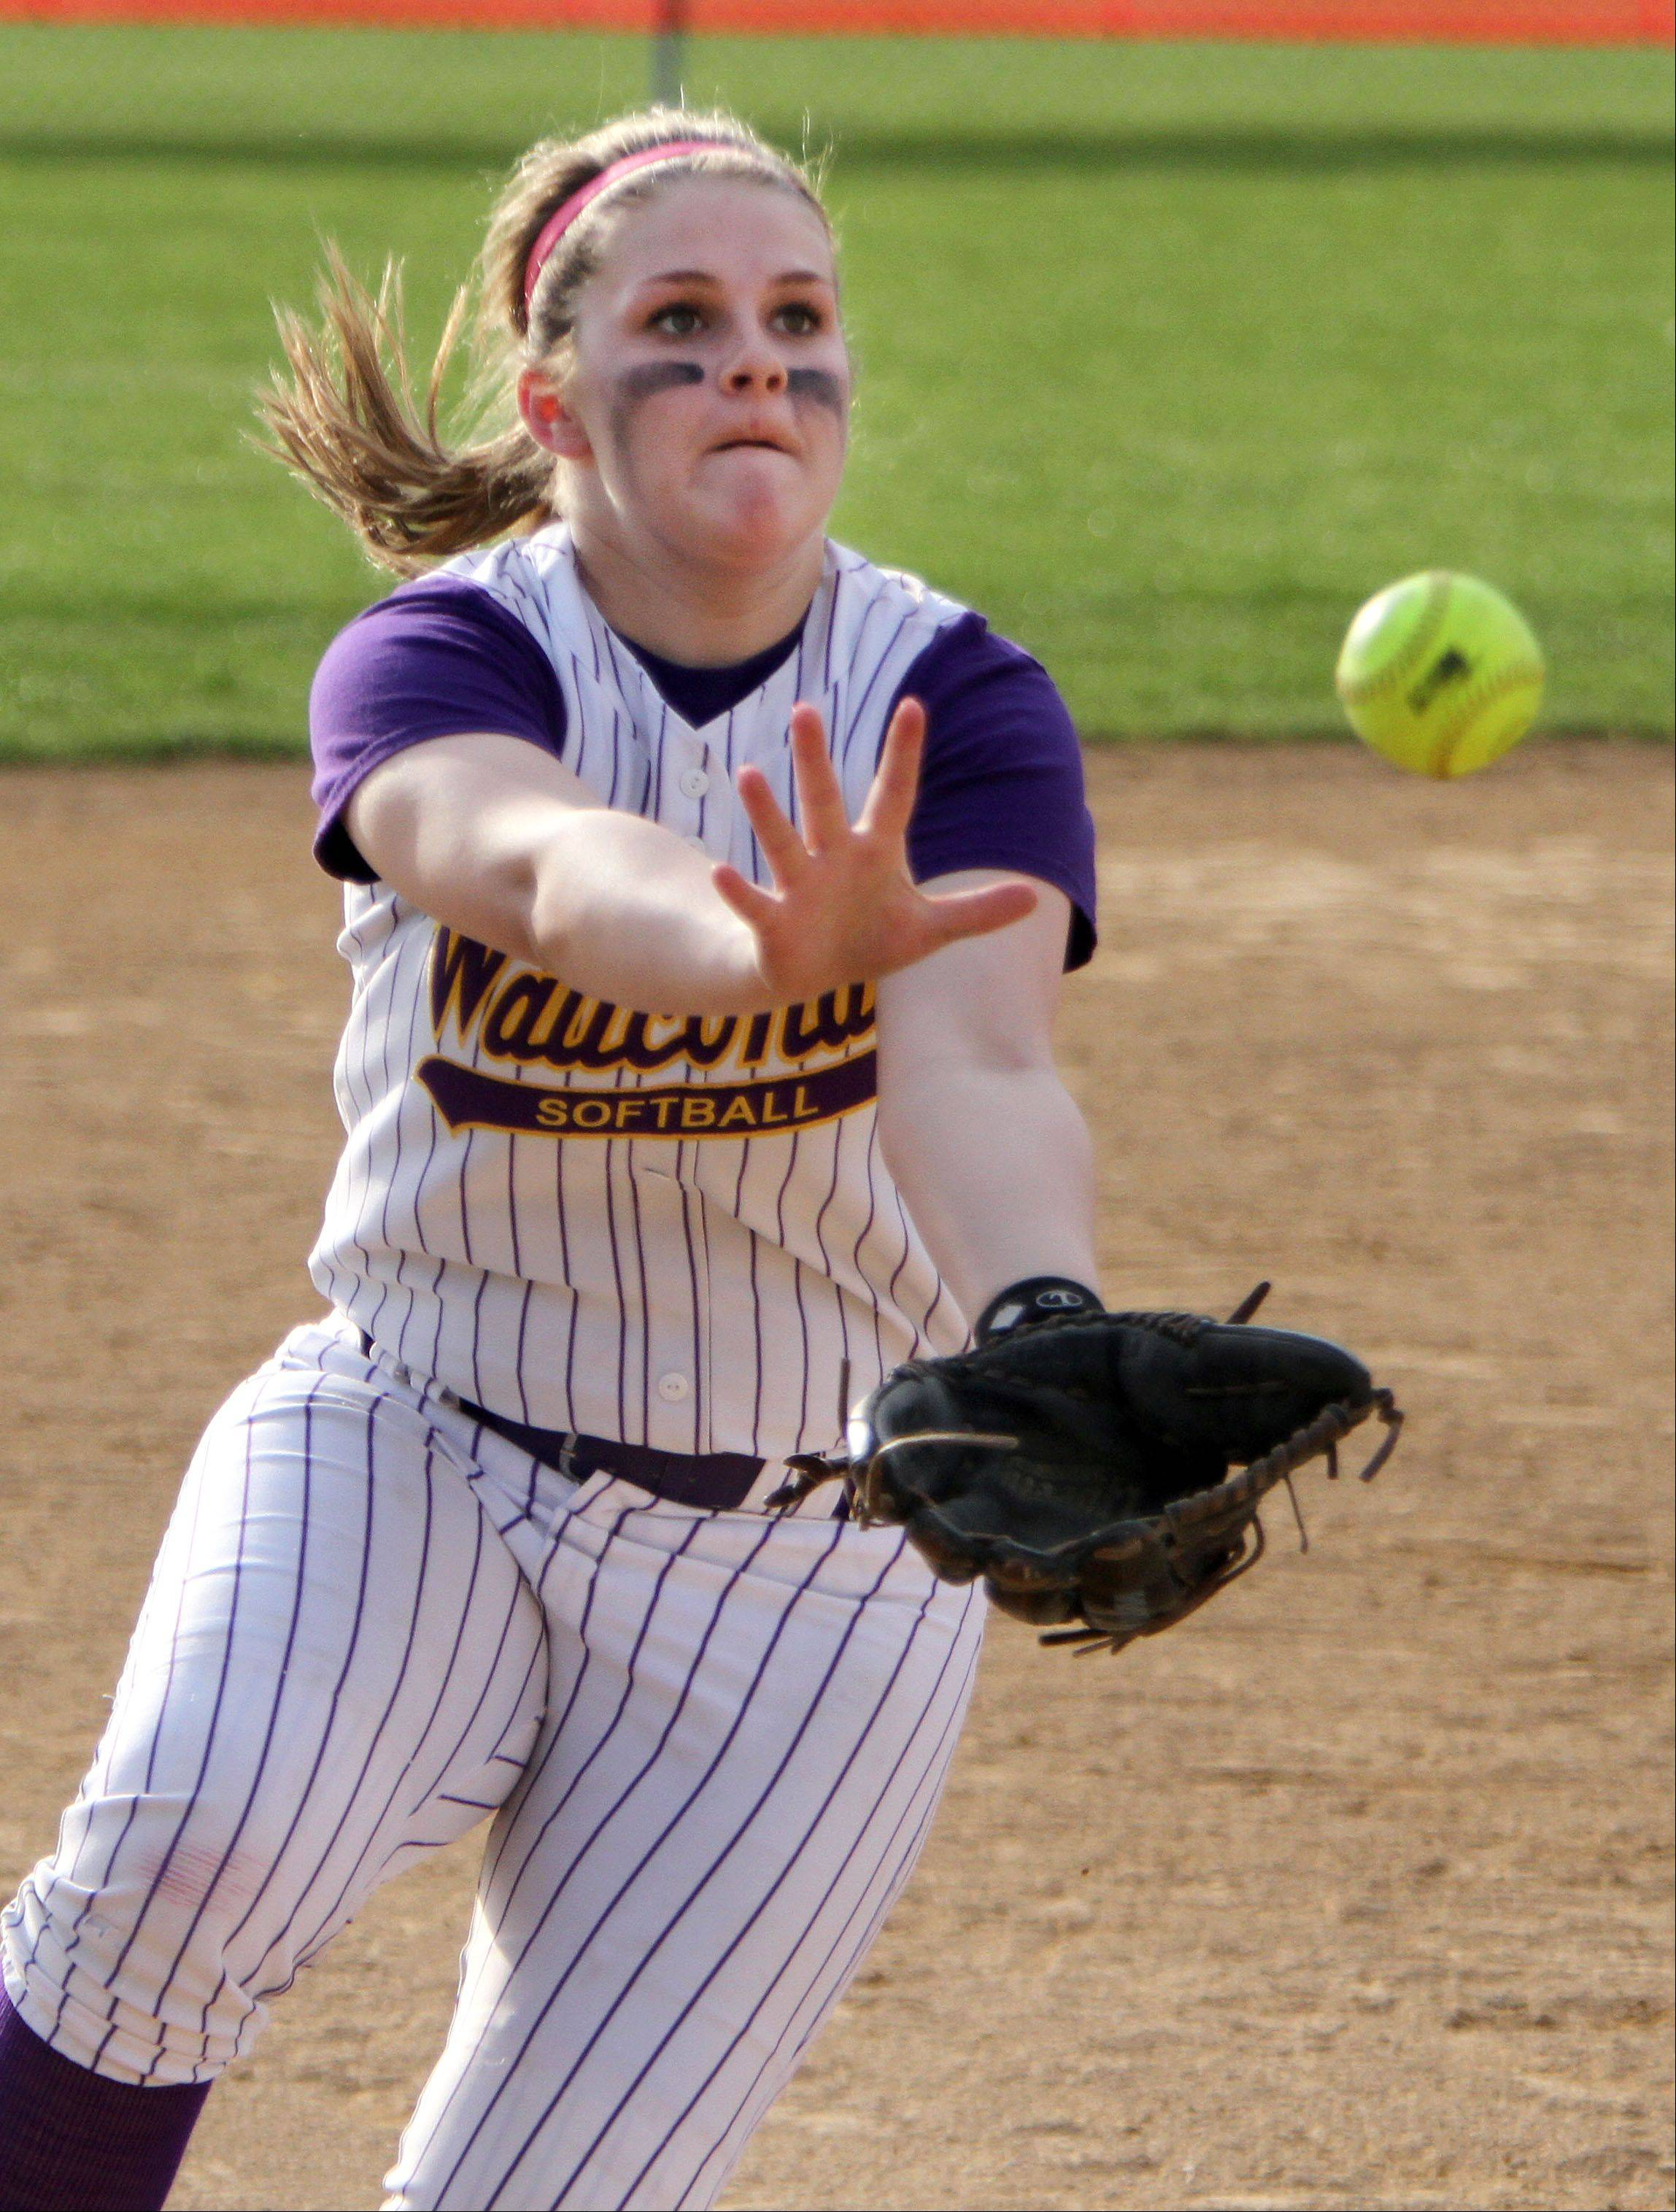 Wauconda's Brooke Sefcik makes a diving catch in the infield during their game Monday at Grant High School in Fox Lake.